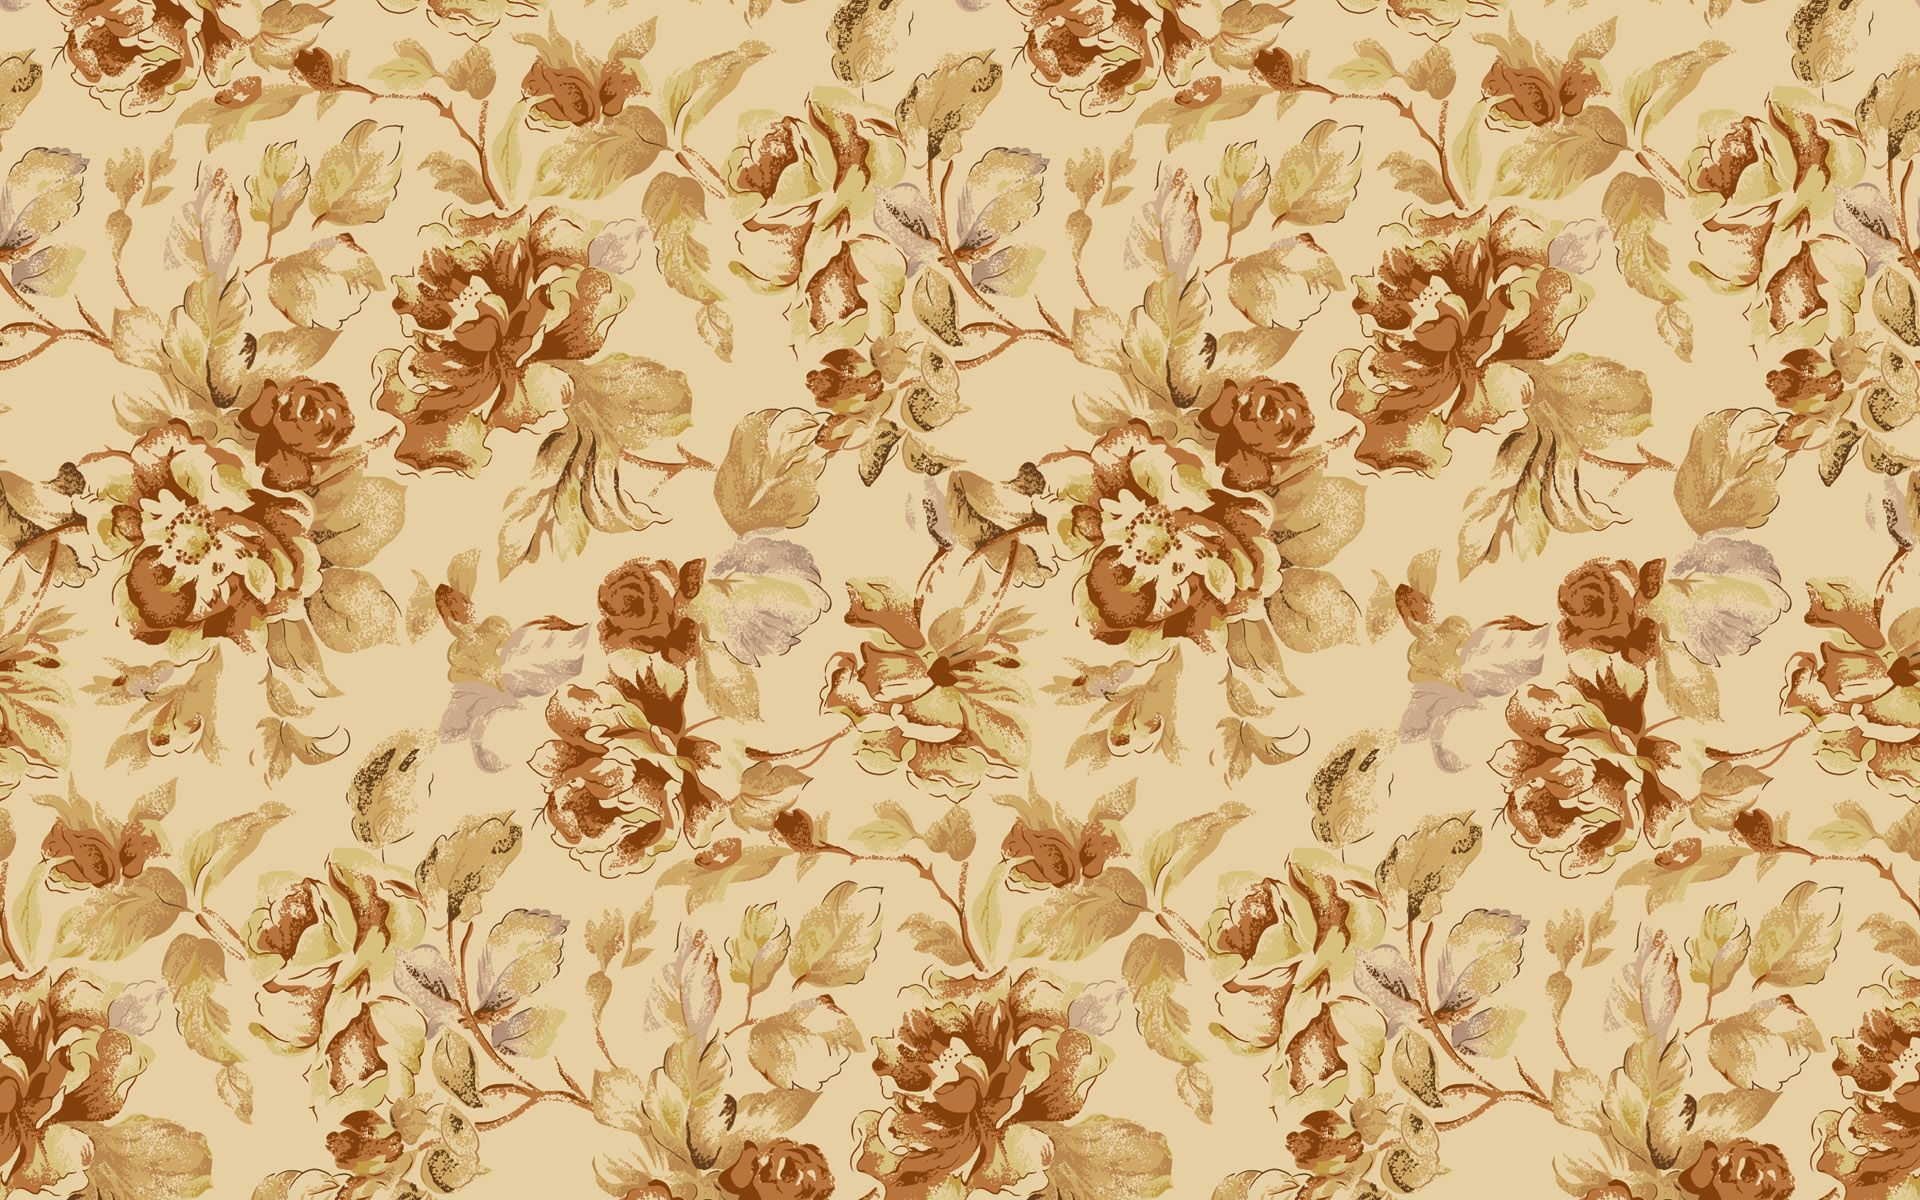 Background wallpaper pattern pattern 3857 refer ncias for Wallpaper pattern